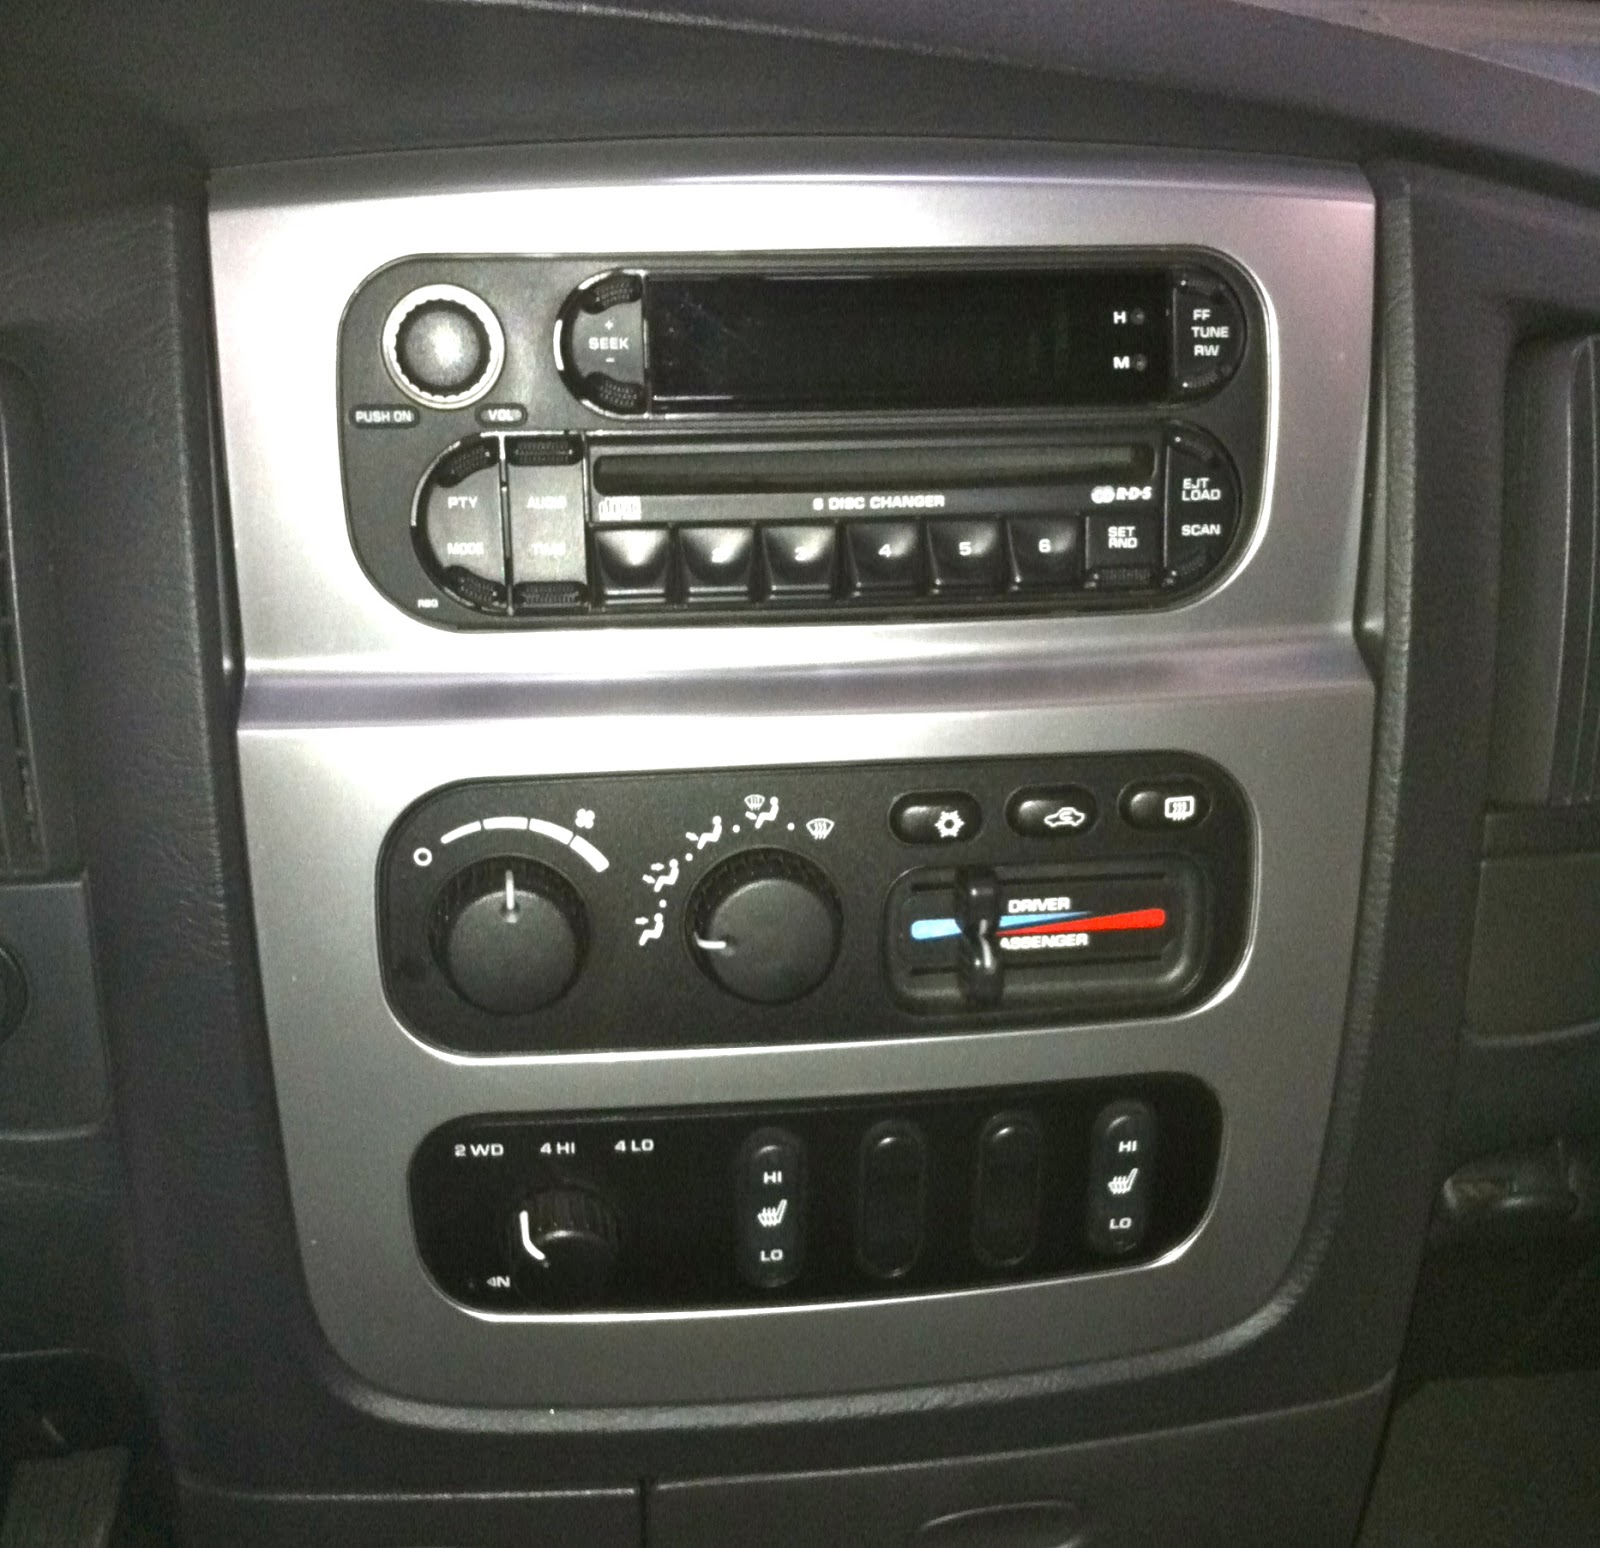 2003 Dodge Ram Infinity Sound System Wiring Diagram 1999 Saturn Sl2 Double Din Radio Install Tips Autos Post